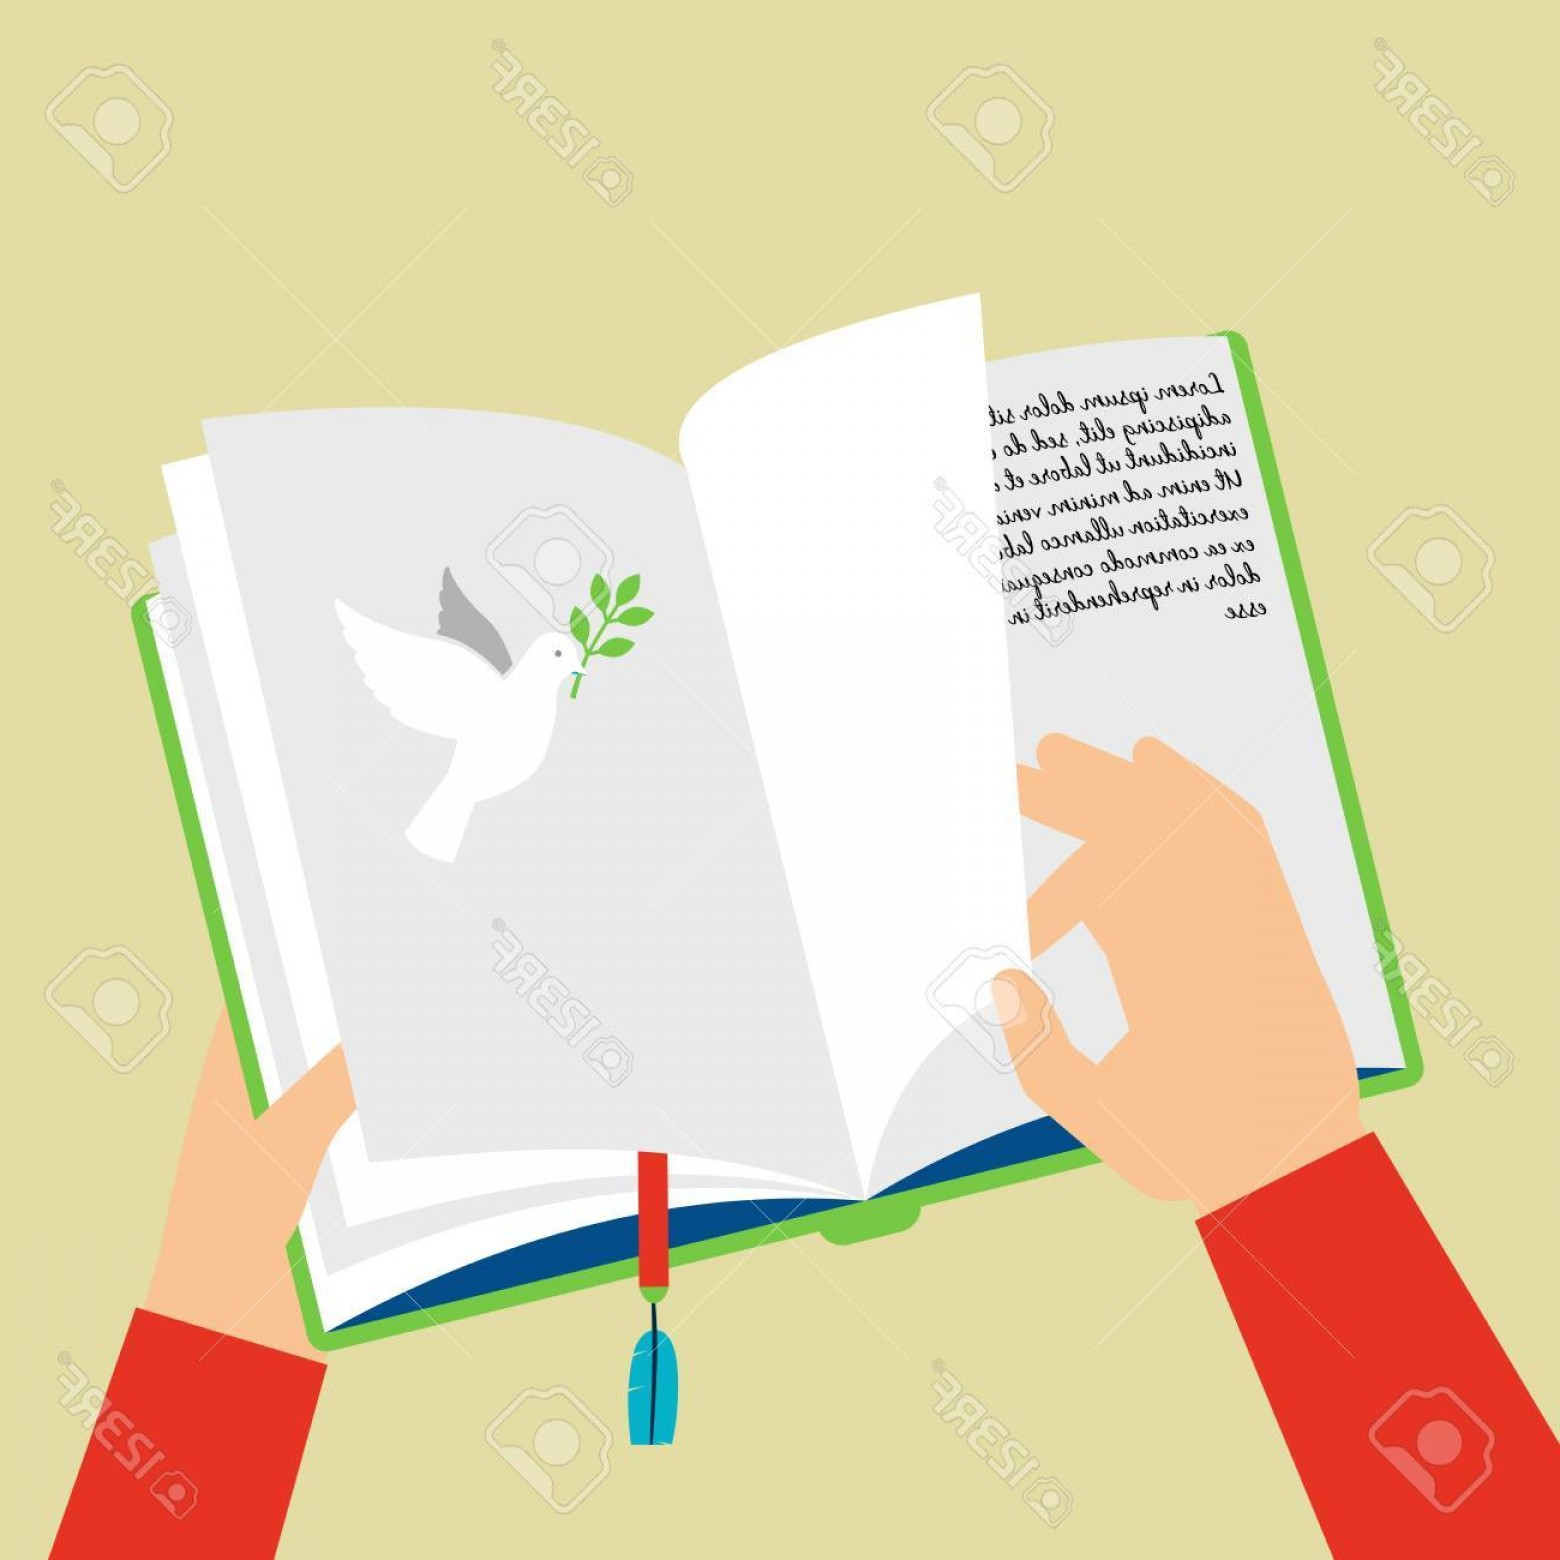 Notepad Writing Hand Vector: Photostock Vector Open Notepad Scheduler With Bookmark Hand Flips Through Pages Vector Illustration